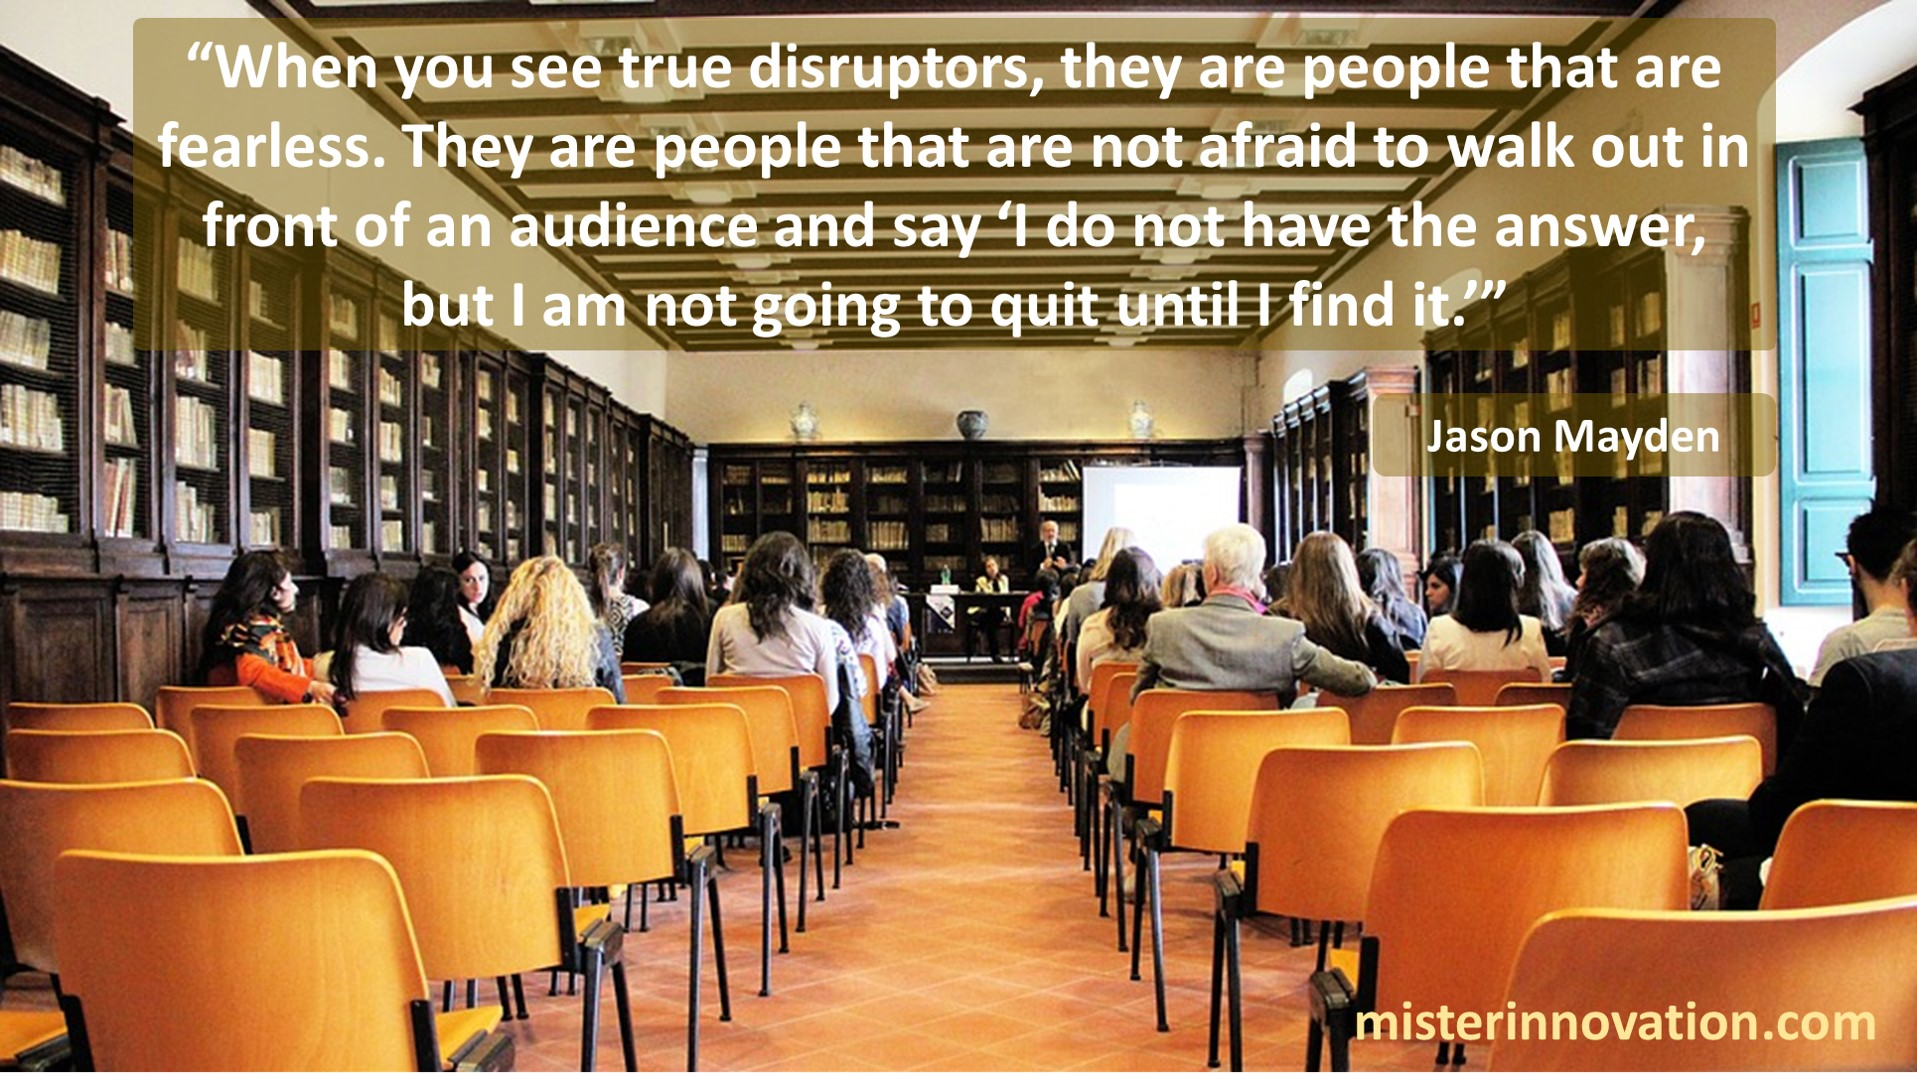 Jason Mayden Quote about Fearless Disruptors